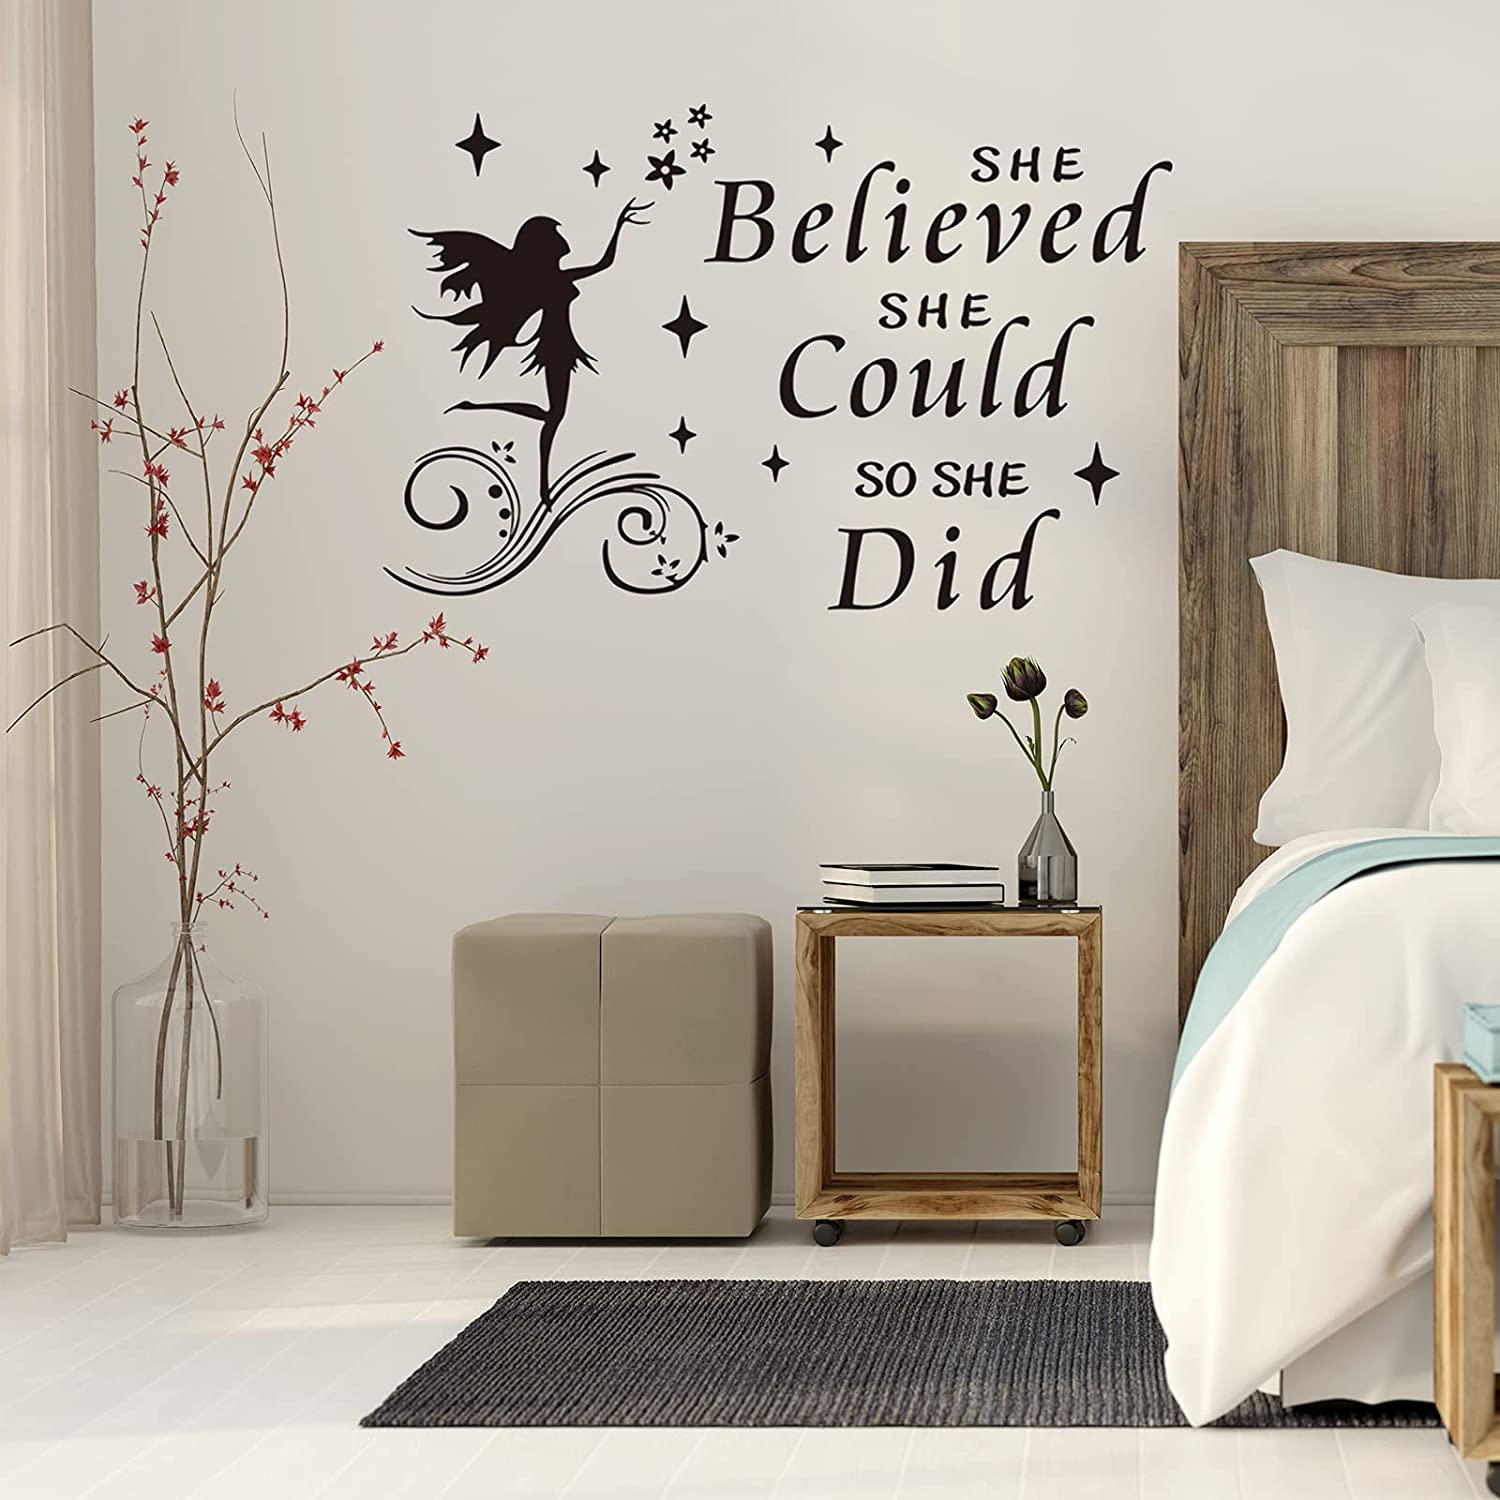 She Believed She Could So She Did Wall Decal, DILIBRA Quote Sayings Bible Slogan Lettering Fairy and Stars Wall Stickers, Inspirational Motto Home Décor for Girl Nursery Bedroom Living Room